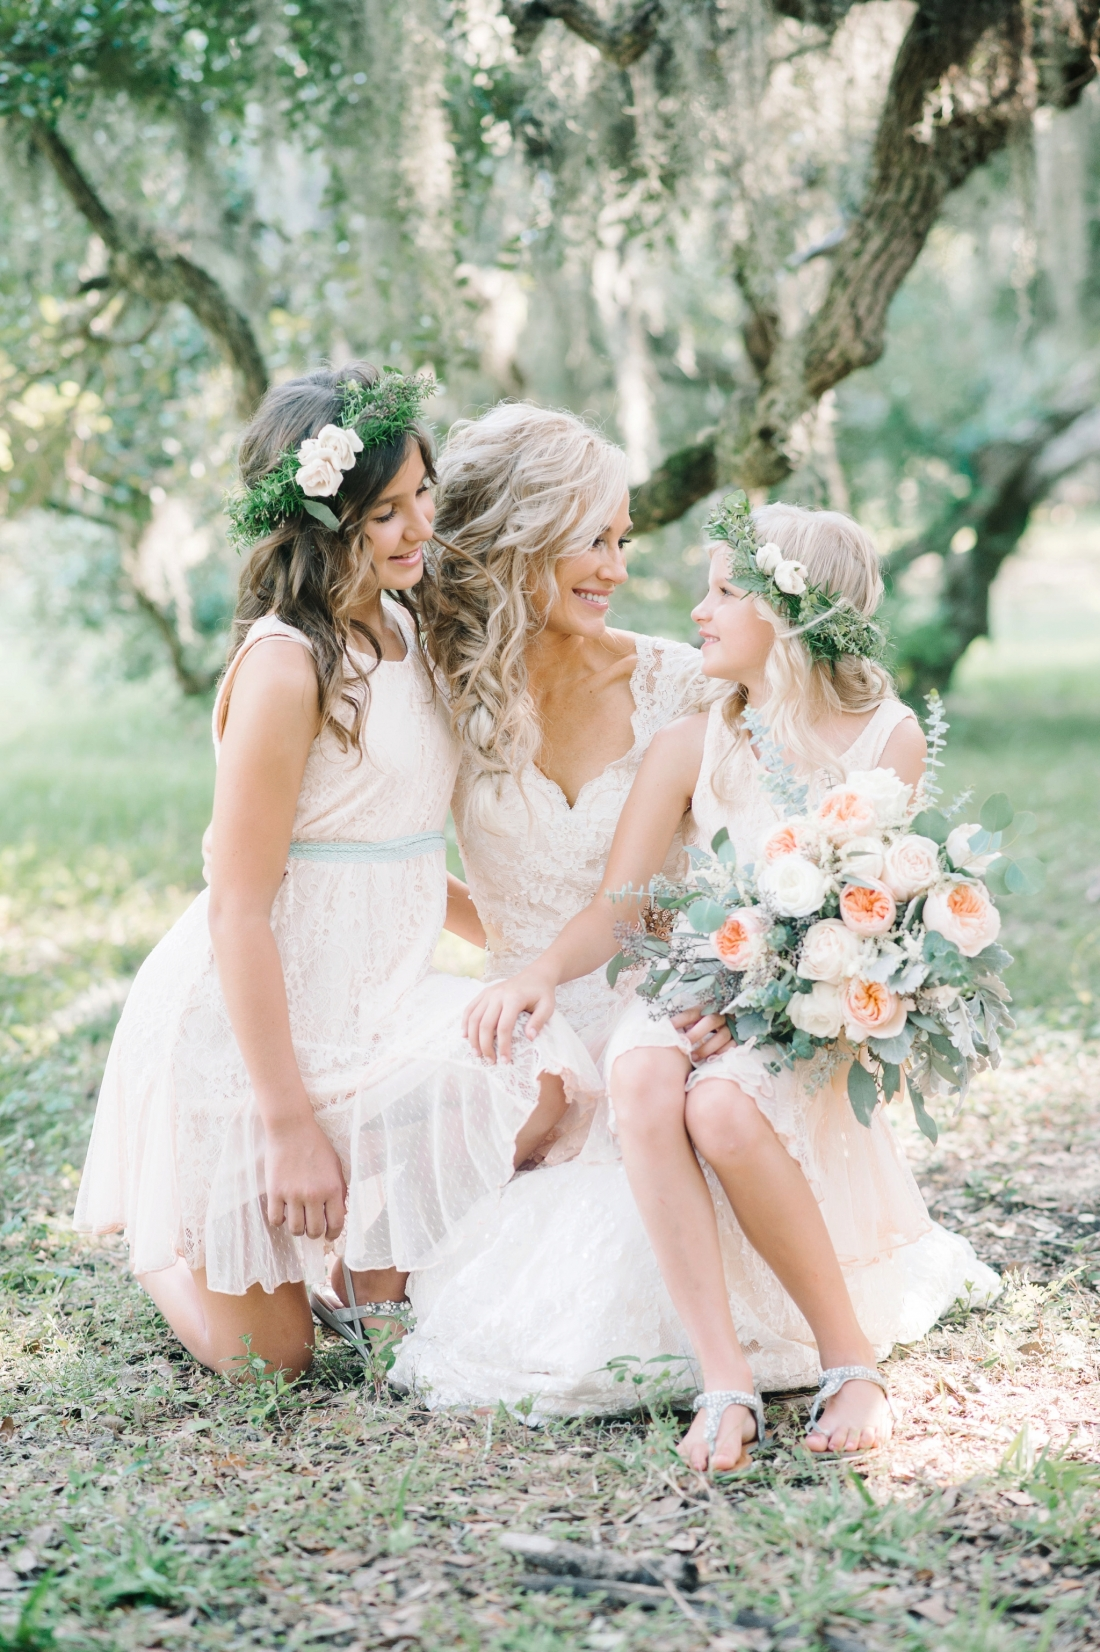 jermiah-and-shelbys-magnolia-plantation-wedding-in-charleston-by-charleston-wedding-photographers-aaron-and-jillian-photography-_0015